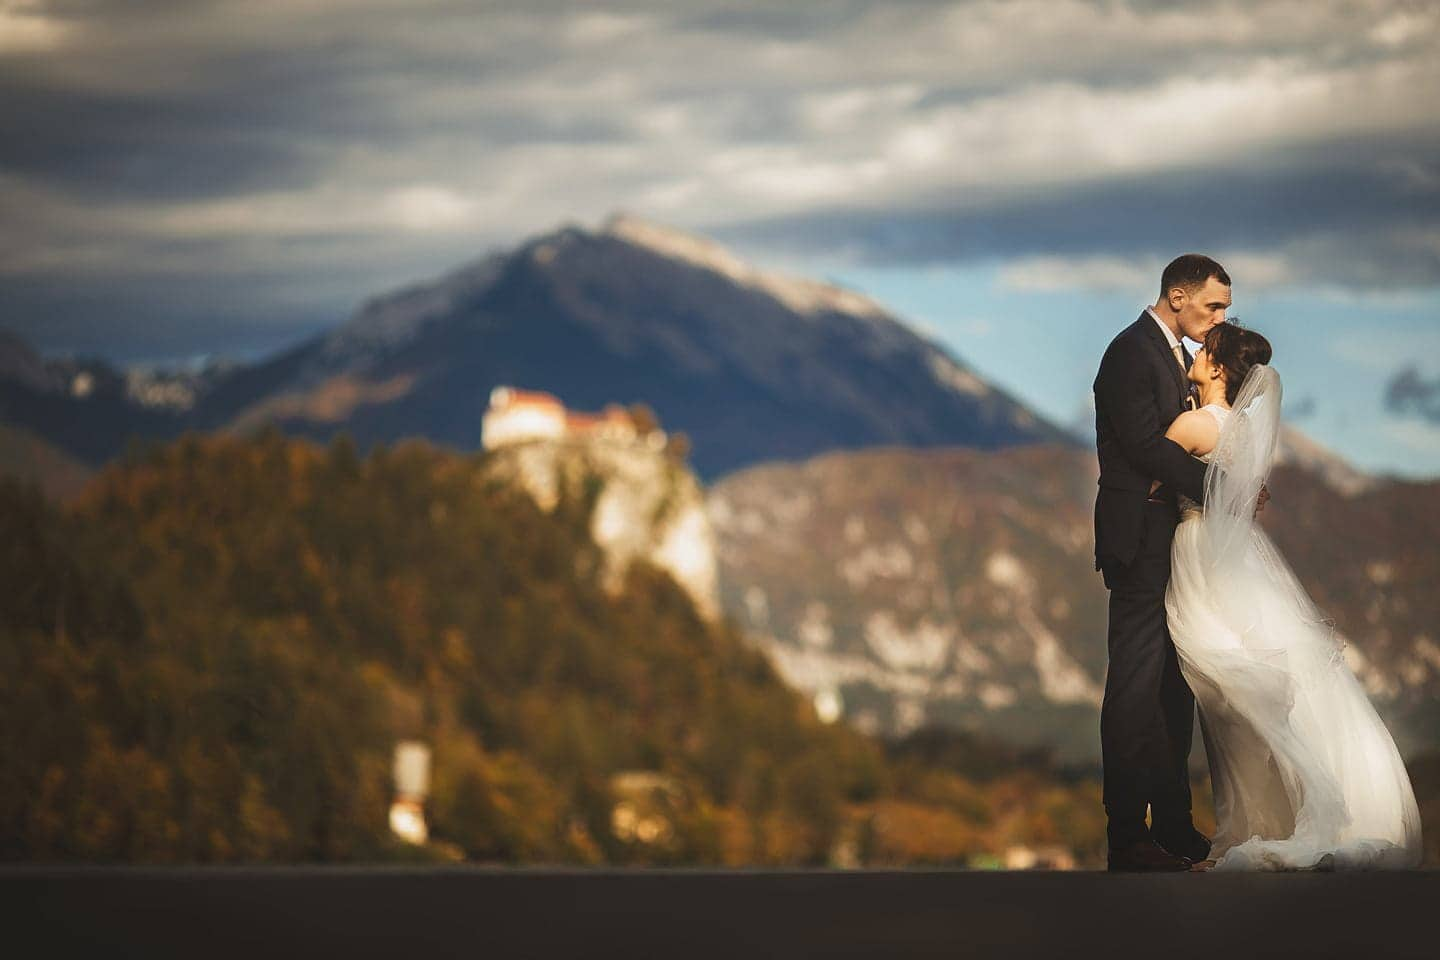 Best of wedding photography collection 2017 - by Aleks & Irena Kus 38